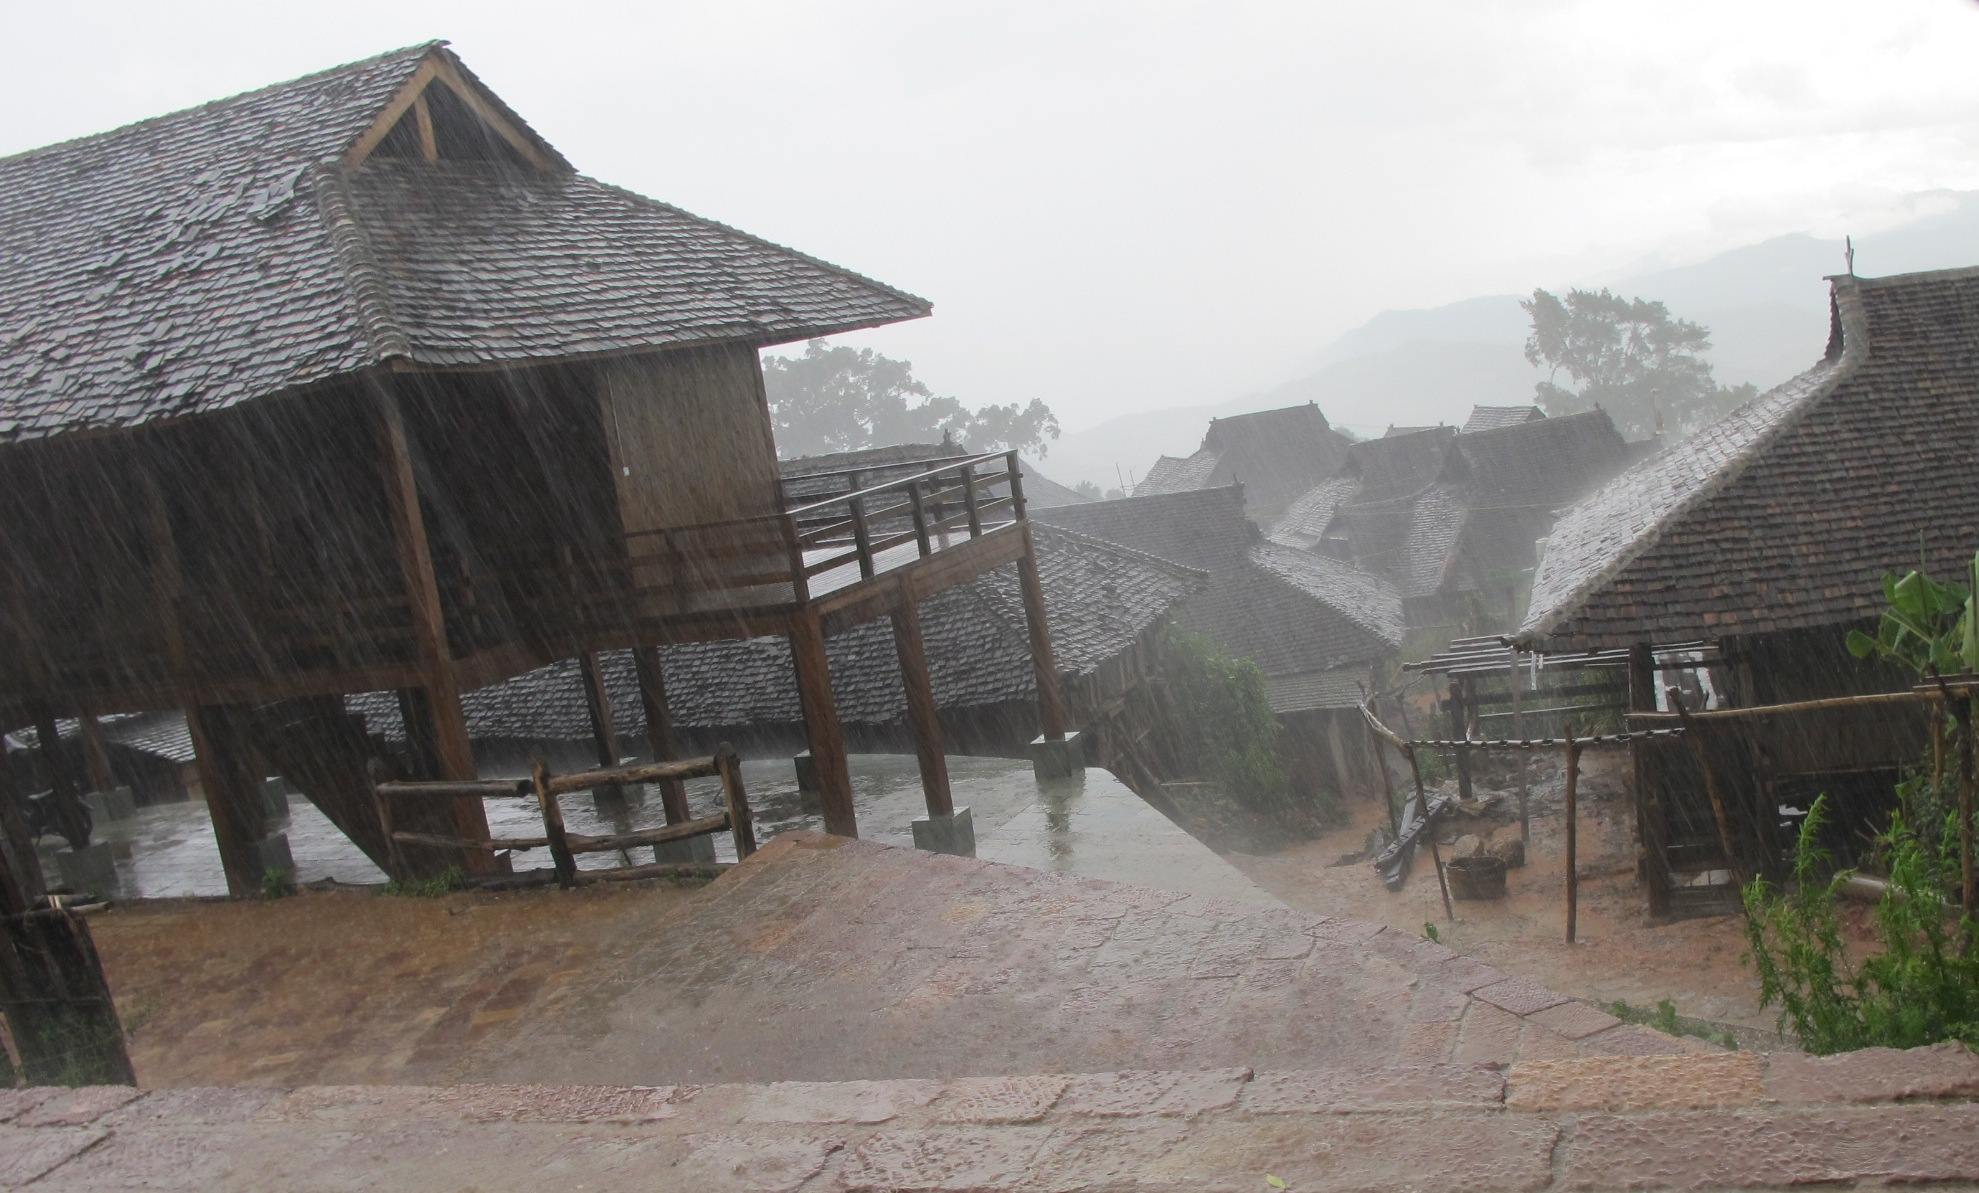 the rainy season Giving money charitably tends to make us happier than spending on ourselves, contributing to health and well-being, according to ubc researcher.